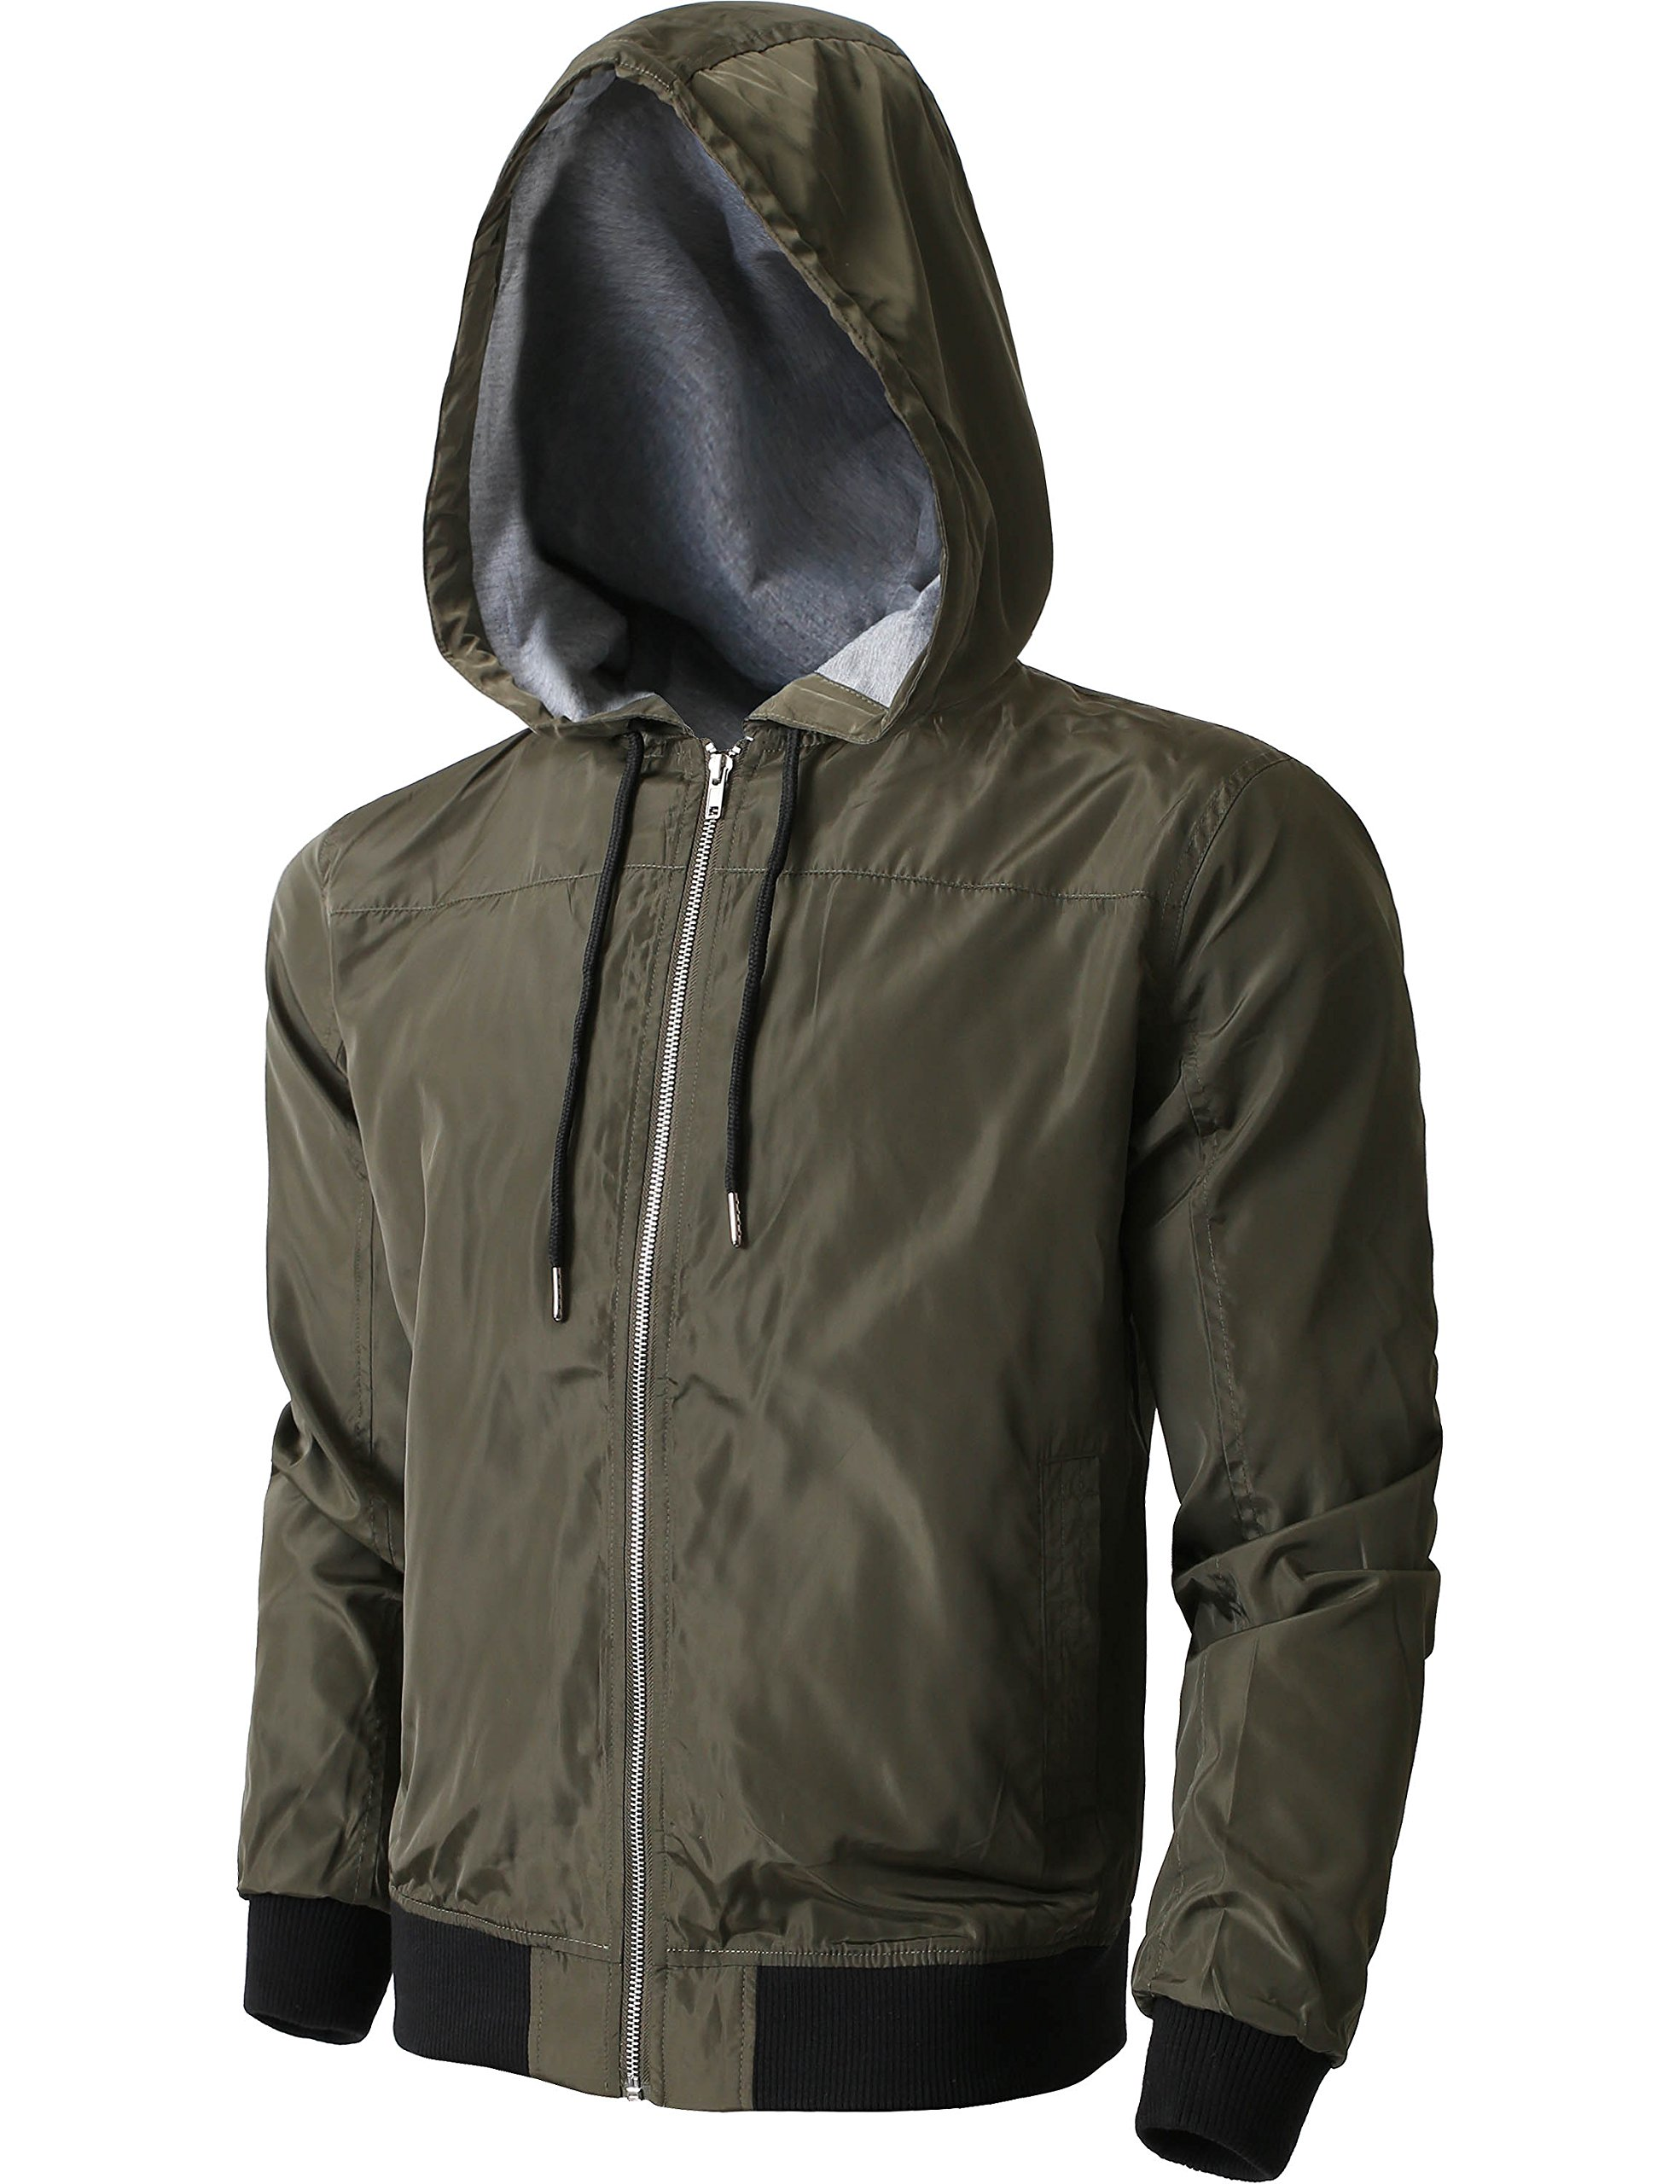 Hat and Beyond Active Lightweight Windbreaker Jackets Casual Slim Fit Sweatshirts (Large, Green)